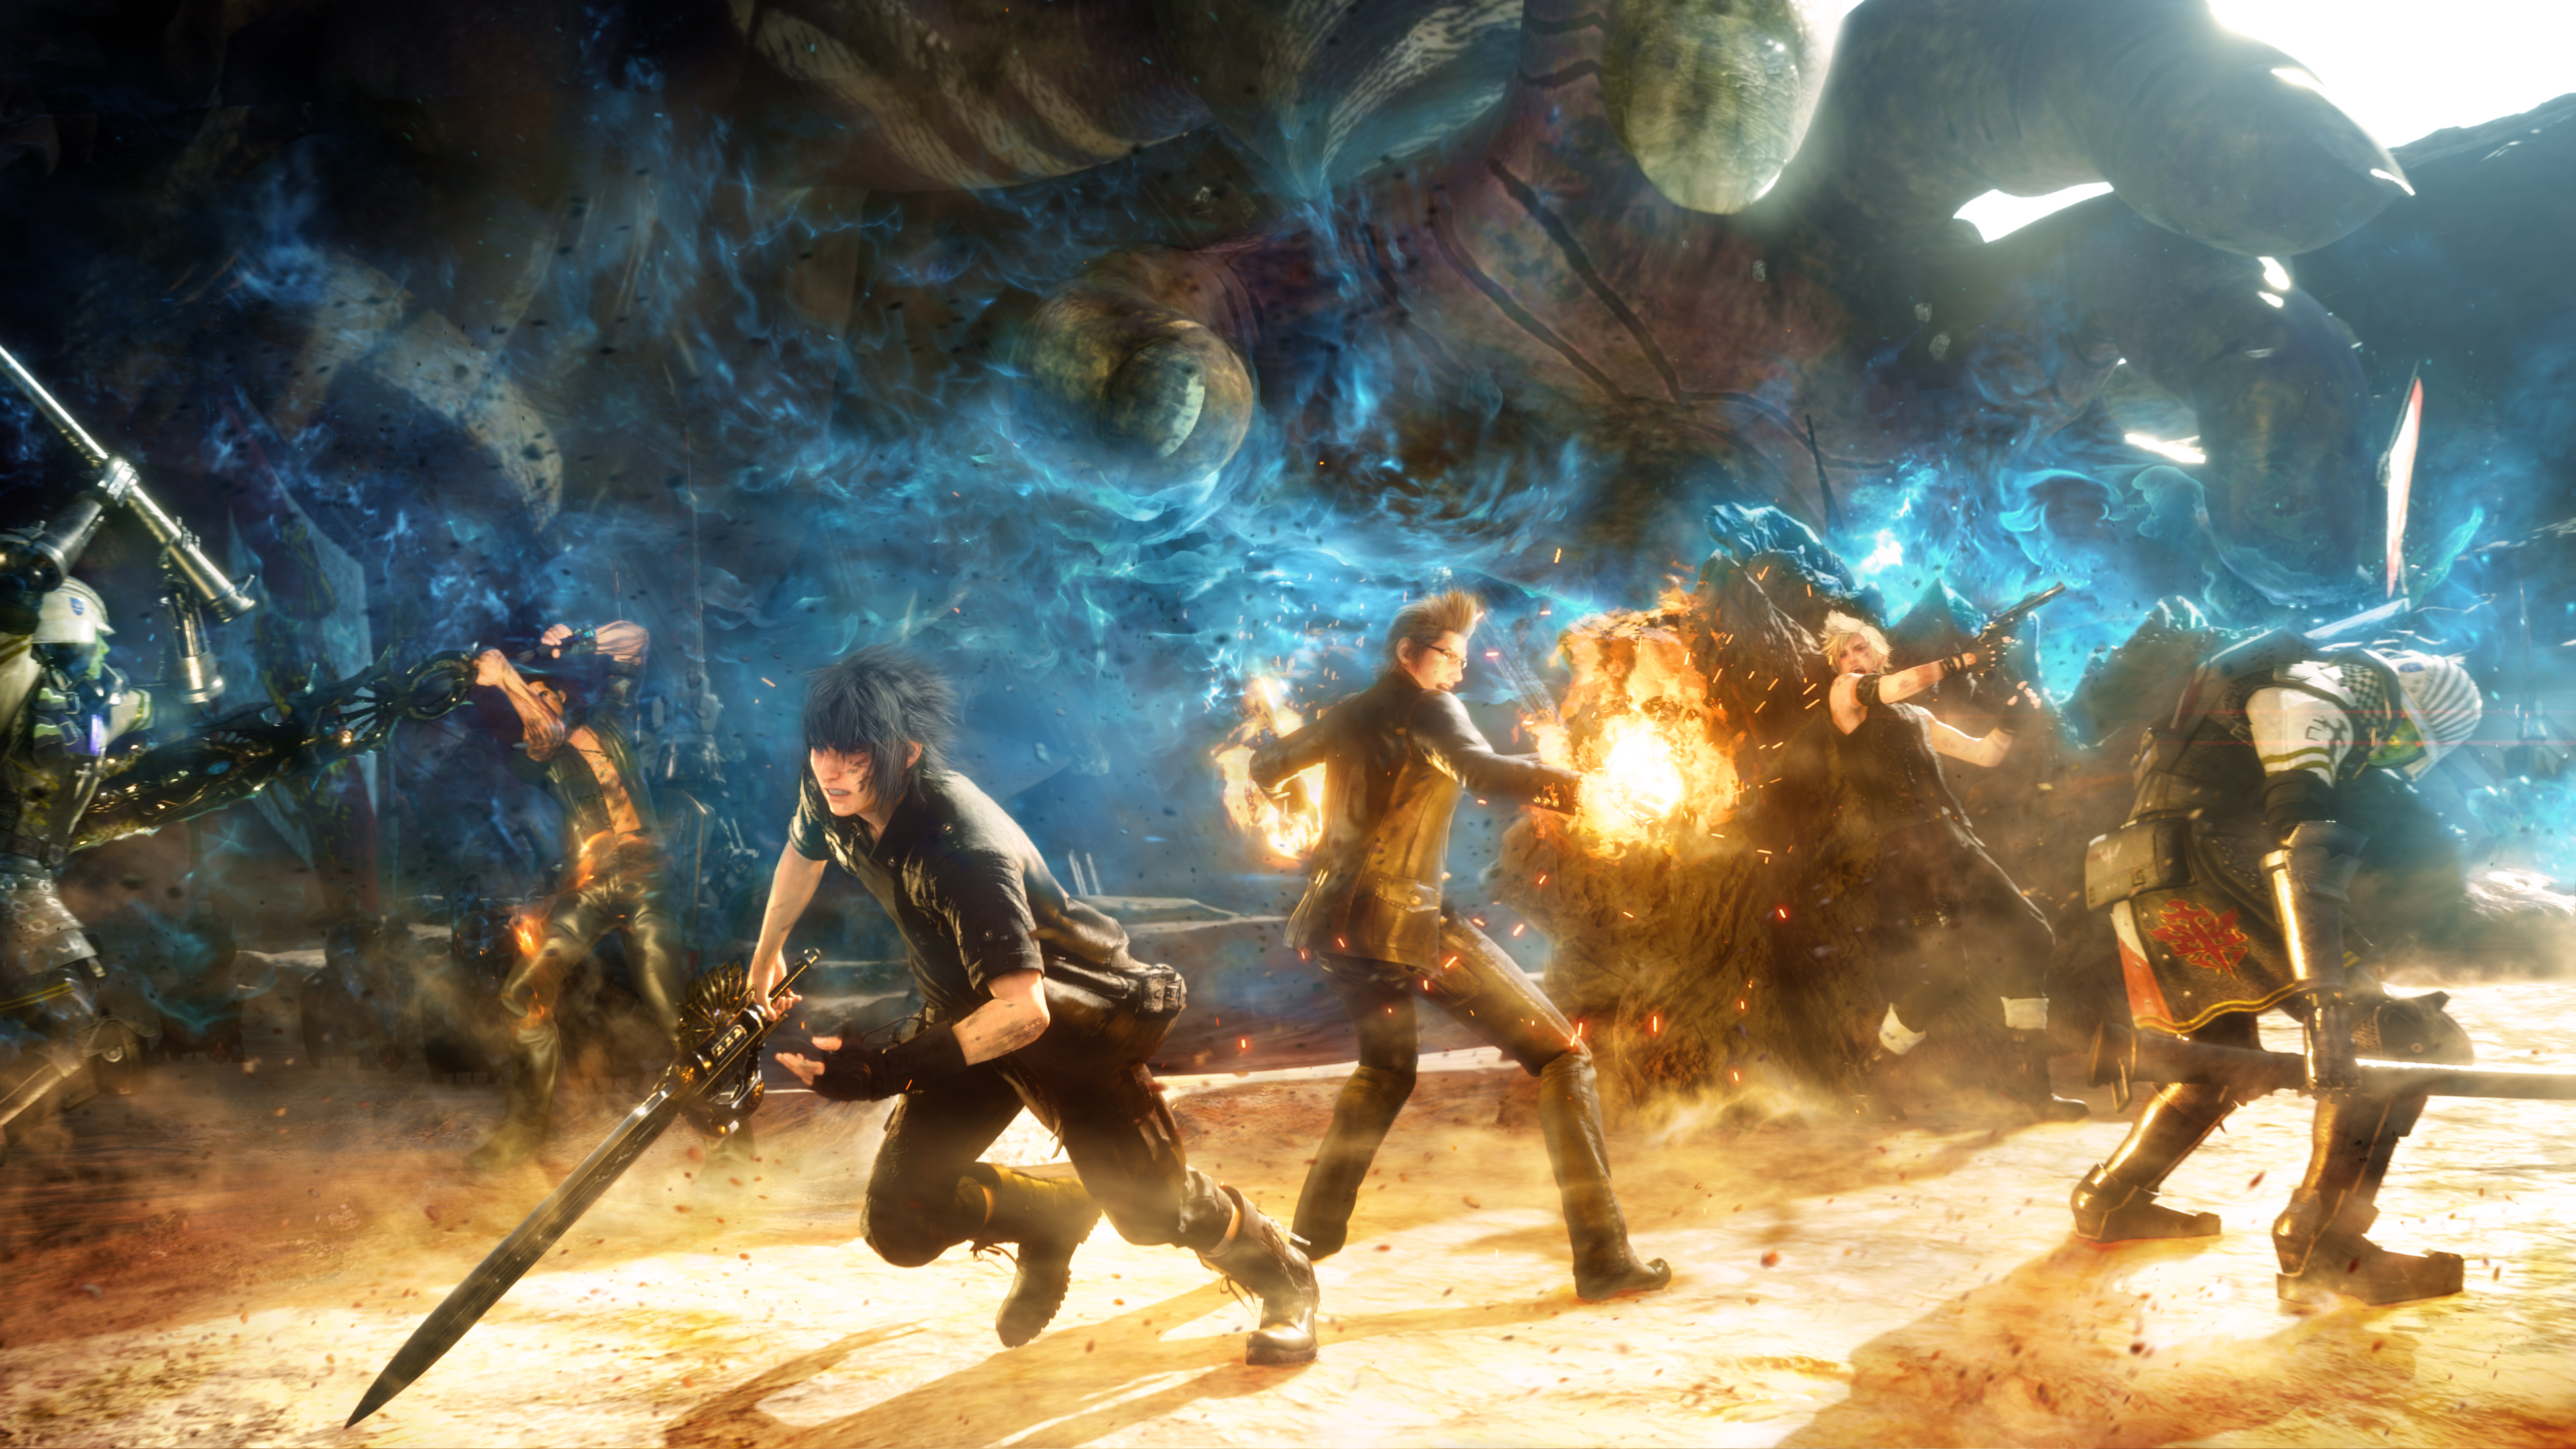 Final Fantasy Xv Final Fantasy Hd Wallpapers Desktop: Final Fantasy XV 4k Ultra HD Wallpaper